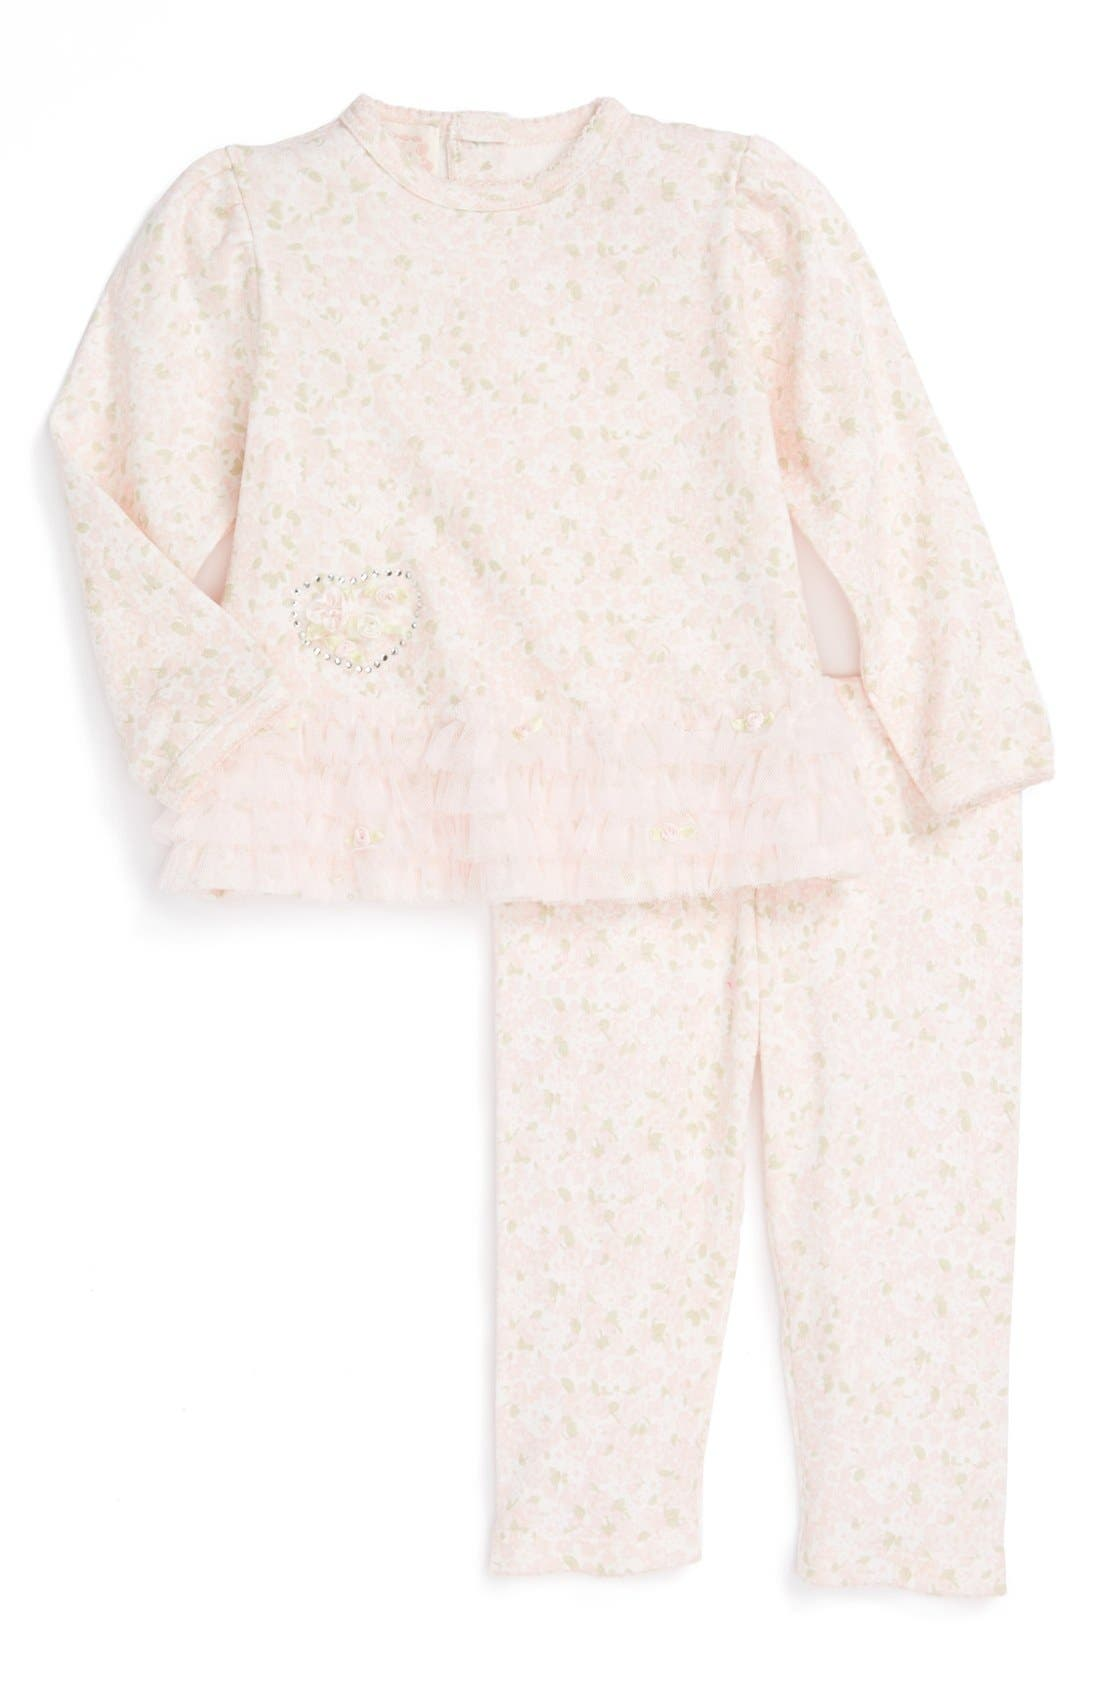 Alternate Image 1 Selected - Biscotti Top & Pants (Baby Girls)